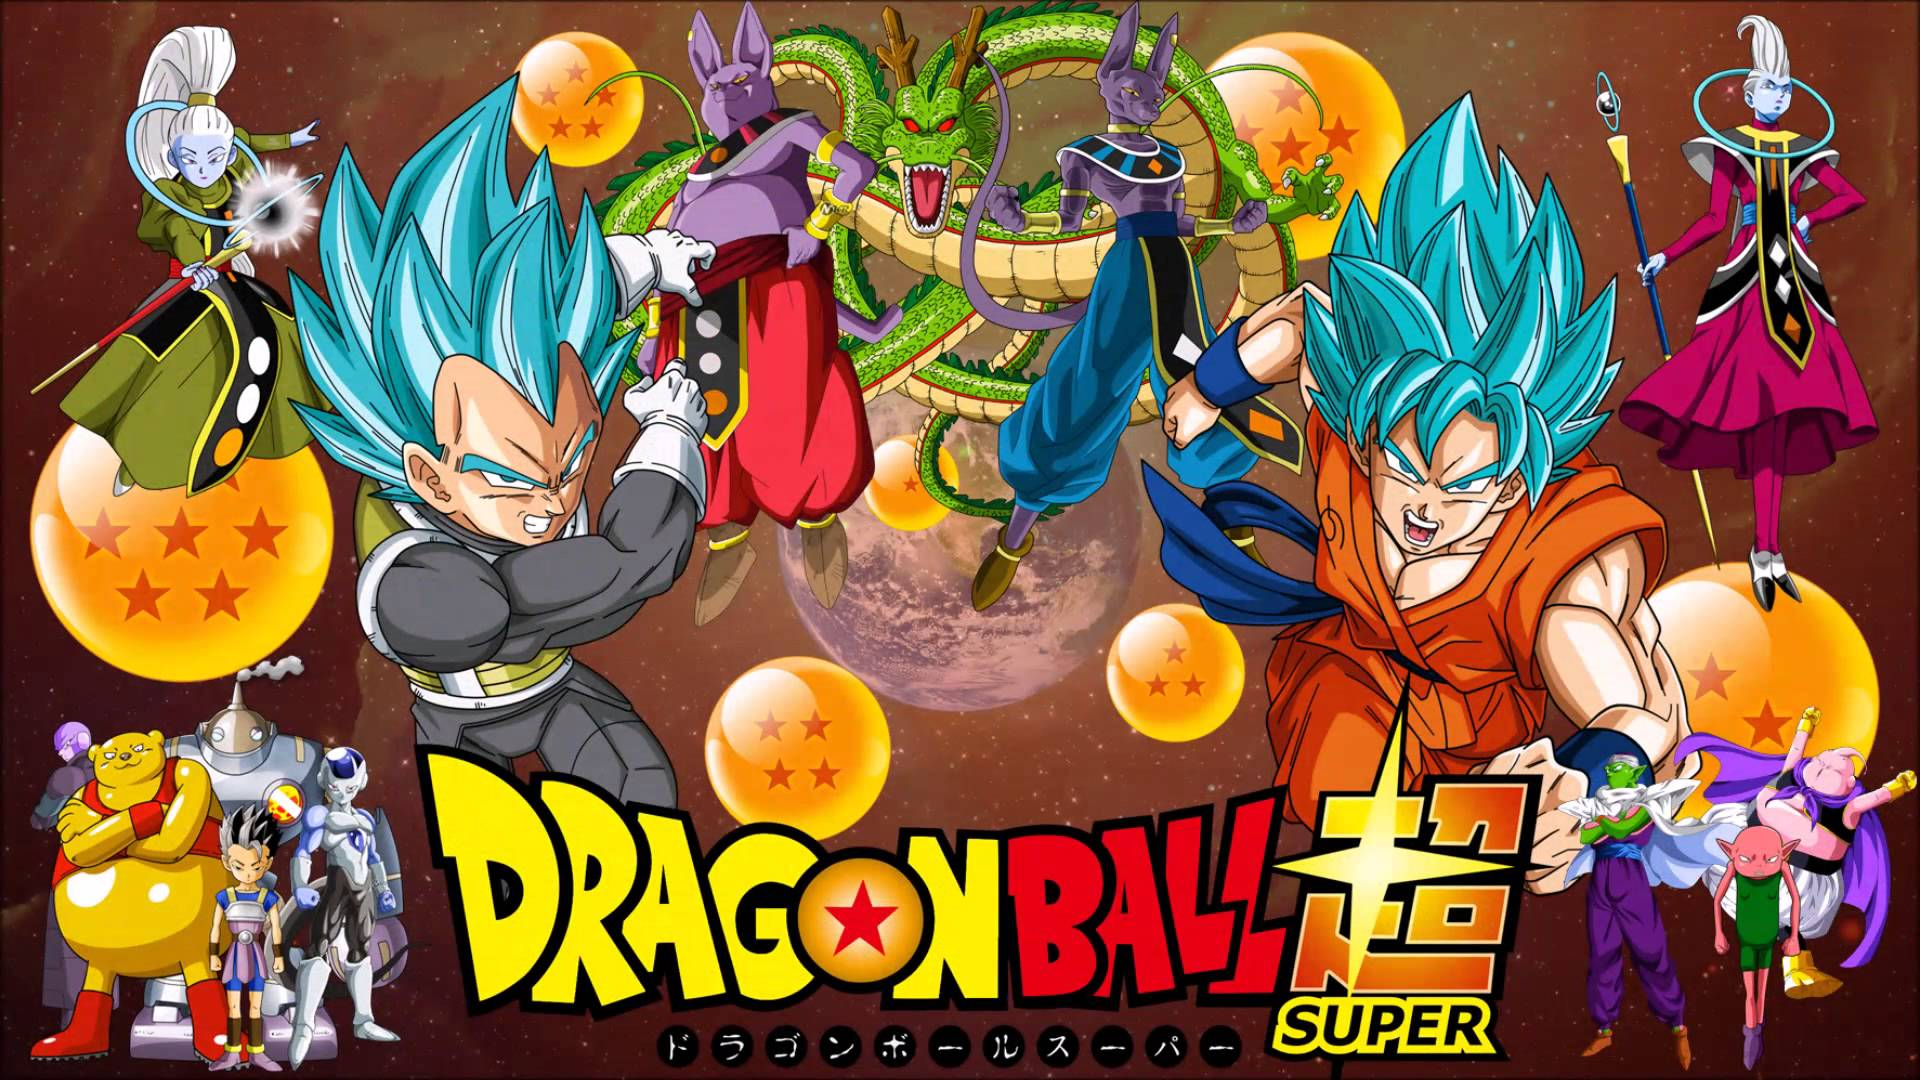 Best Anime Dragon Ball Super Wallpapers HD